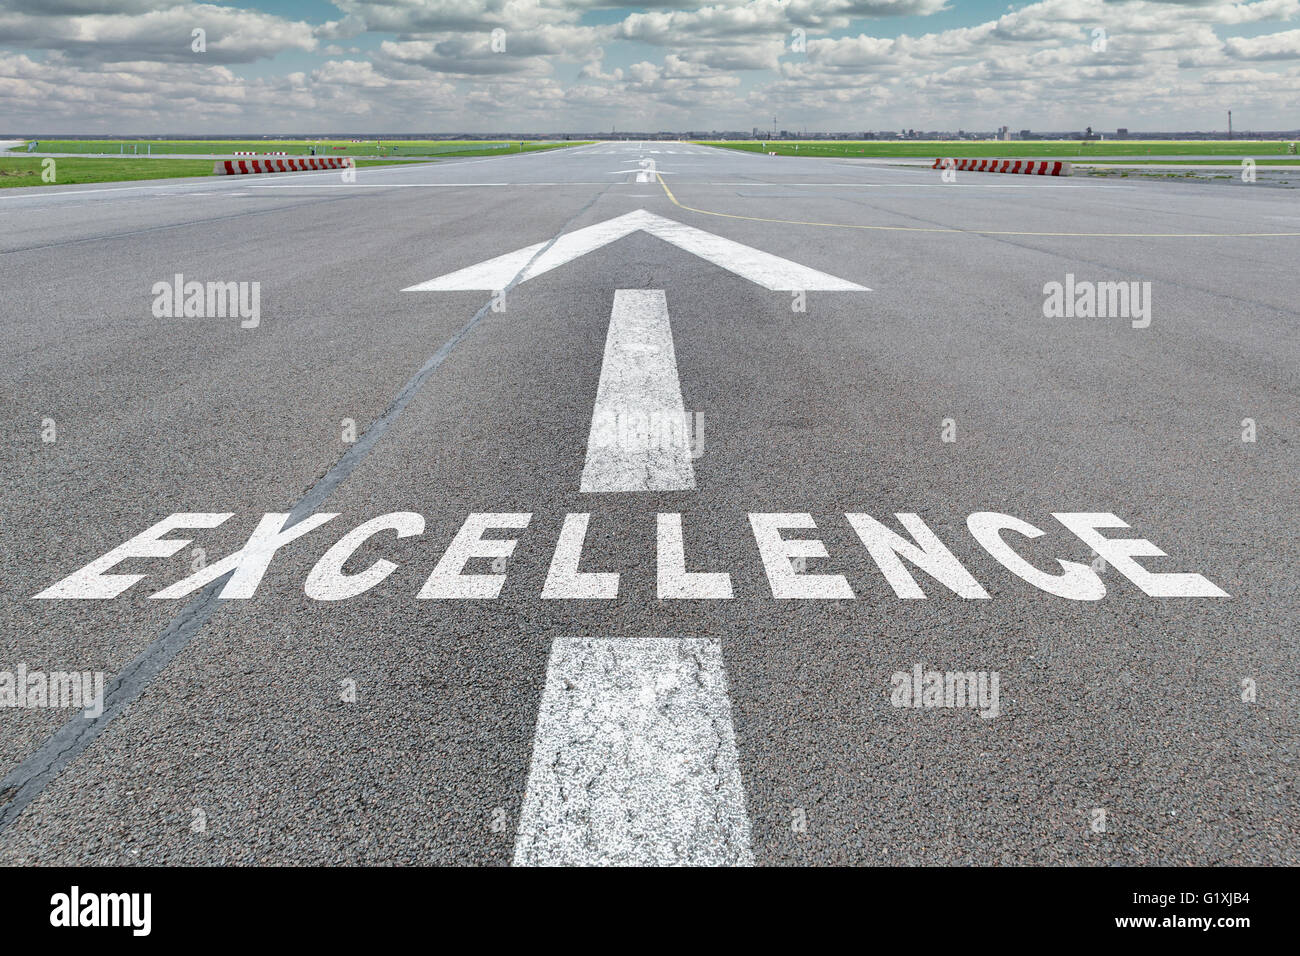 Runway of airport with arrow guideline and Excellence letters painted on the surface - Stock Image